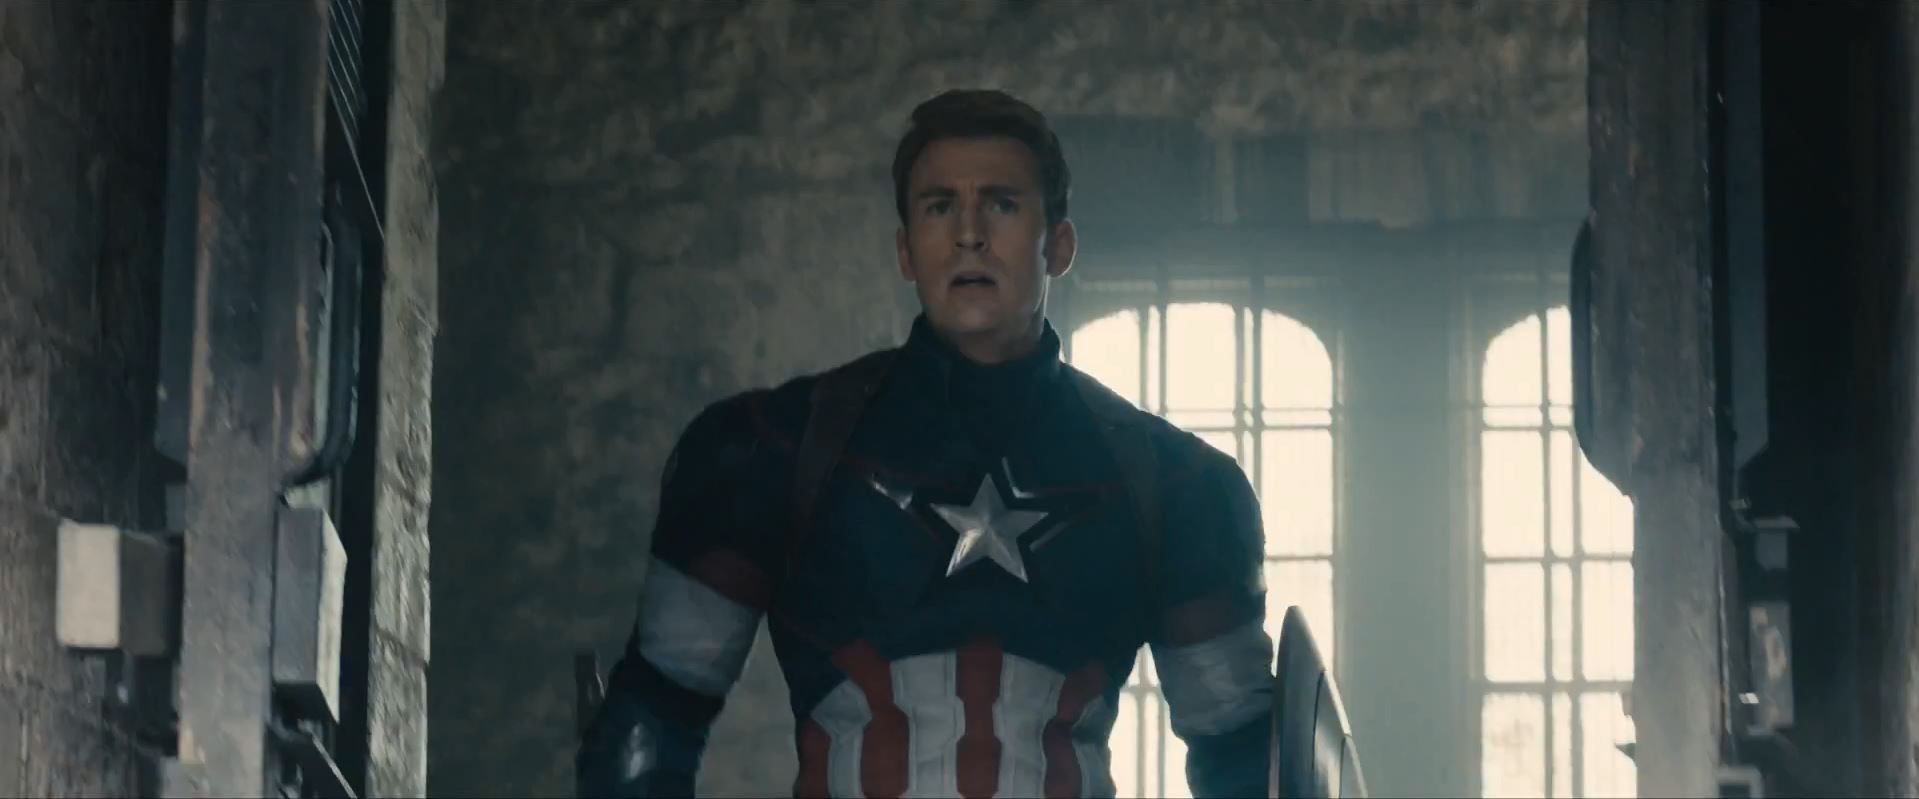 Avengers Age Of Ultron Trailer Released - Chris Evans as Steve Rogers Captain America